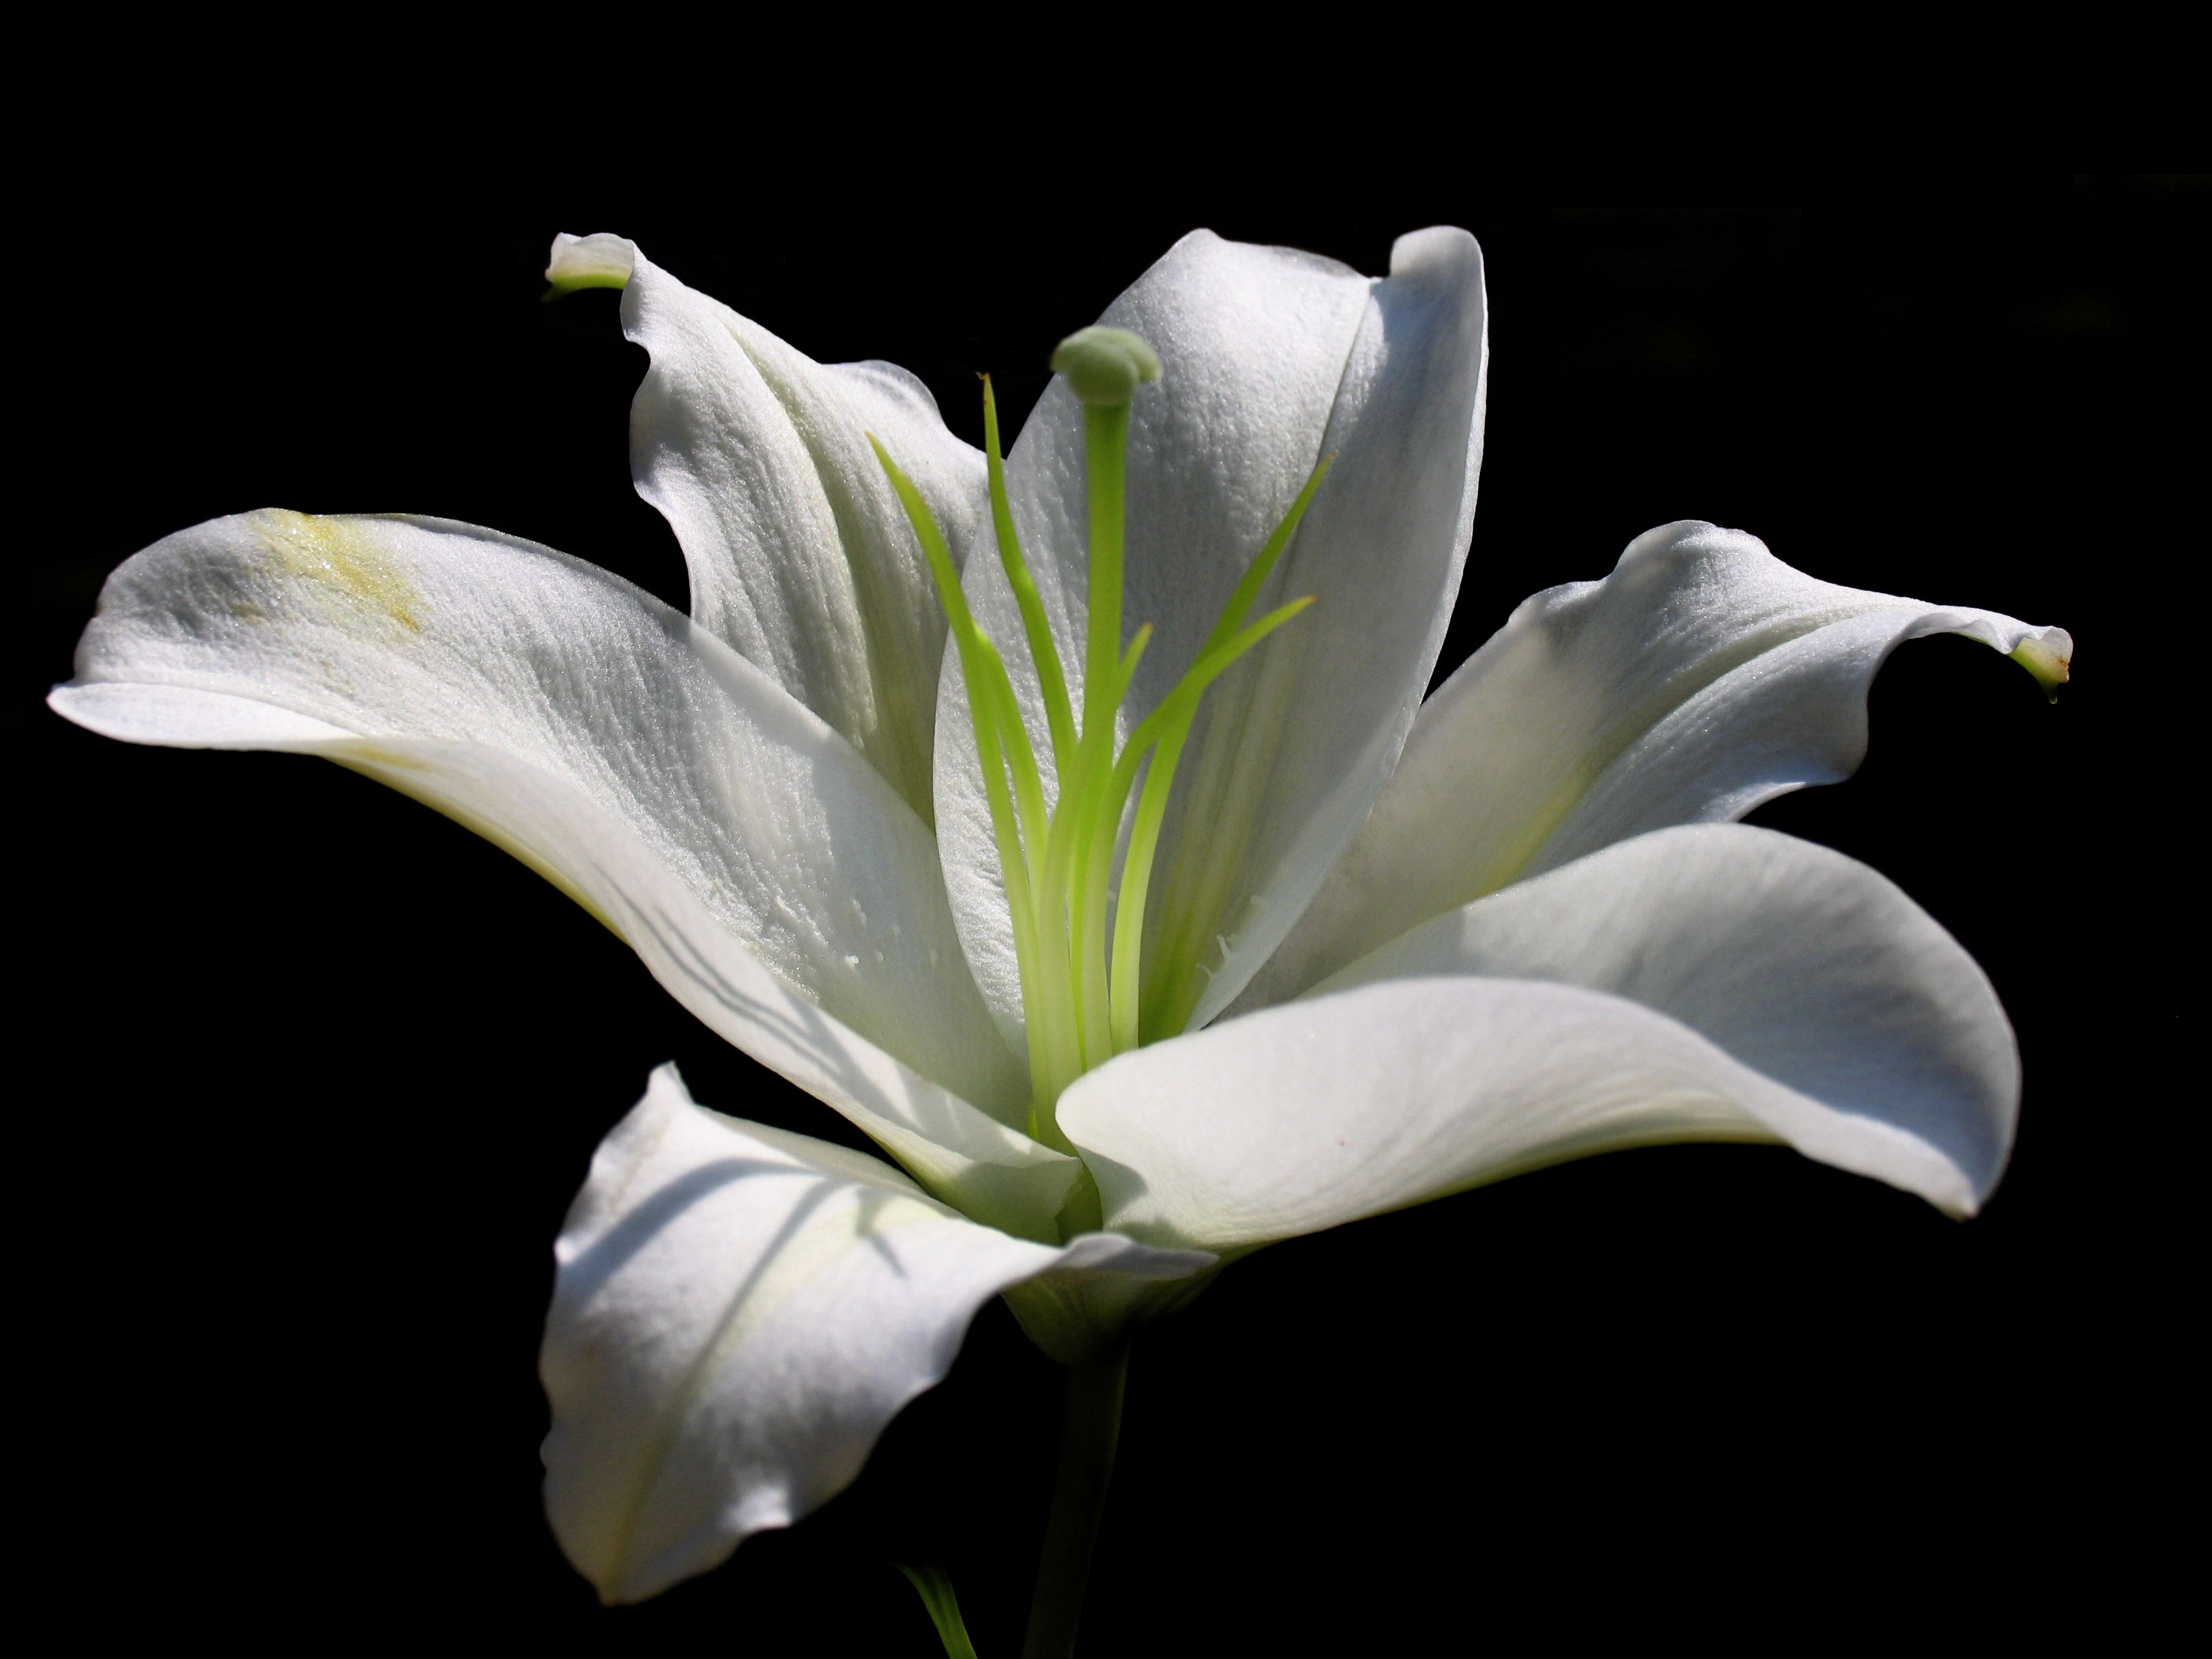 Lily flower google search lily flower pinterest white lily white lily flower page 1 izmirmasajfo Gallery